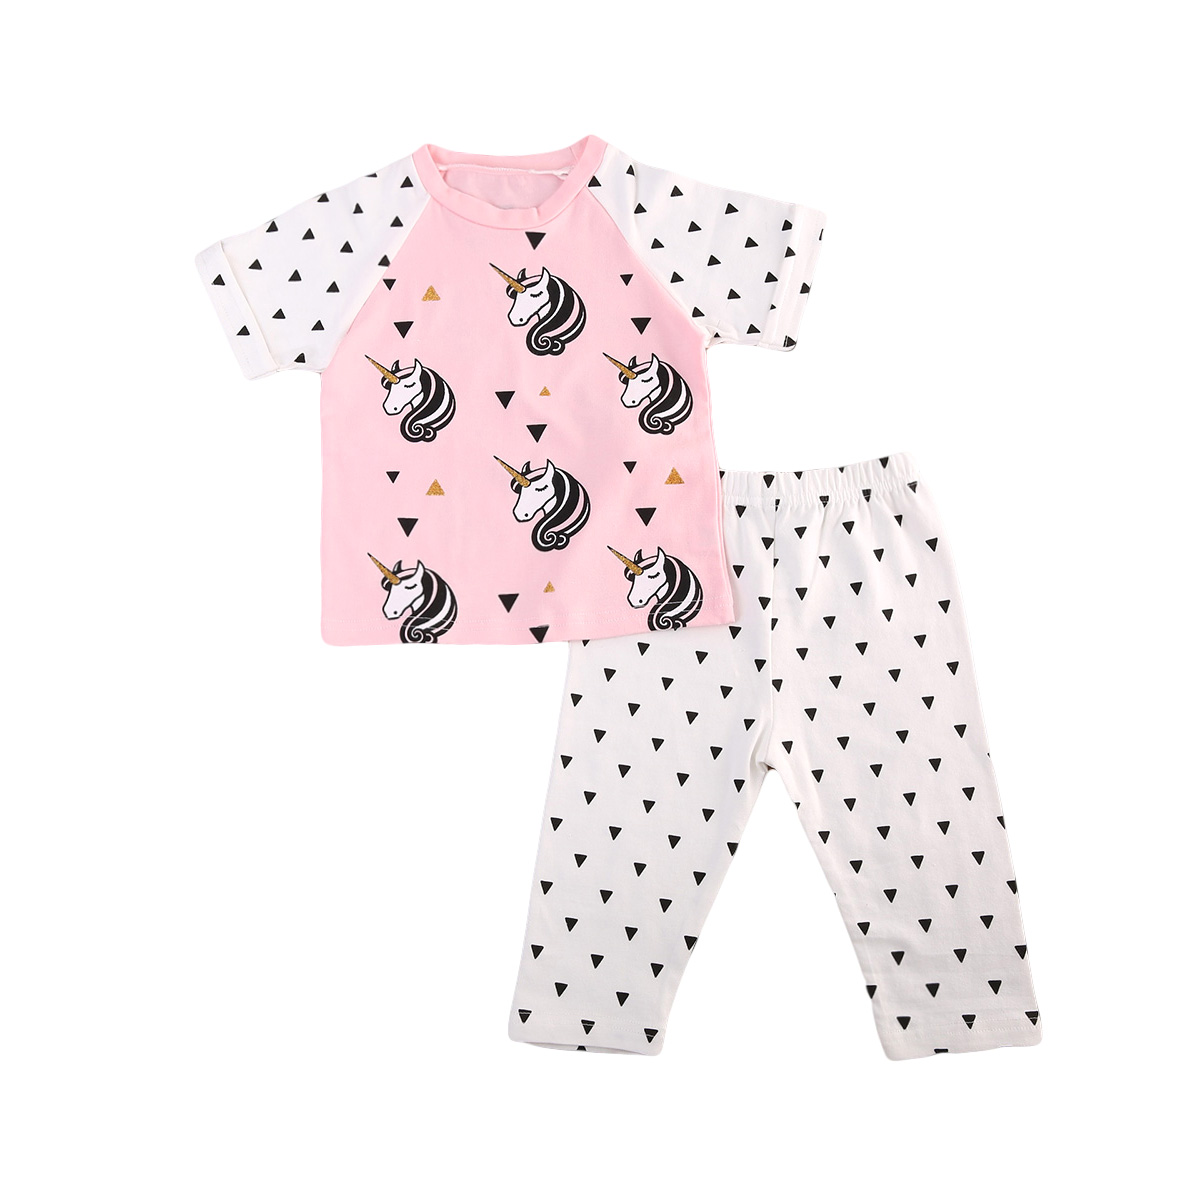 Cute Toddler Infant Baby Girls Unicorn Tops Short Sleeve T-shirt Pants Legging Outfits Set Summer Autumn Cotton Clothes 2pcs toddler kids baby girls clothing cotton t shirt tops short sleeve pants 2pcs outfit clothes set girl tracksuit